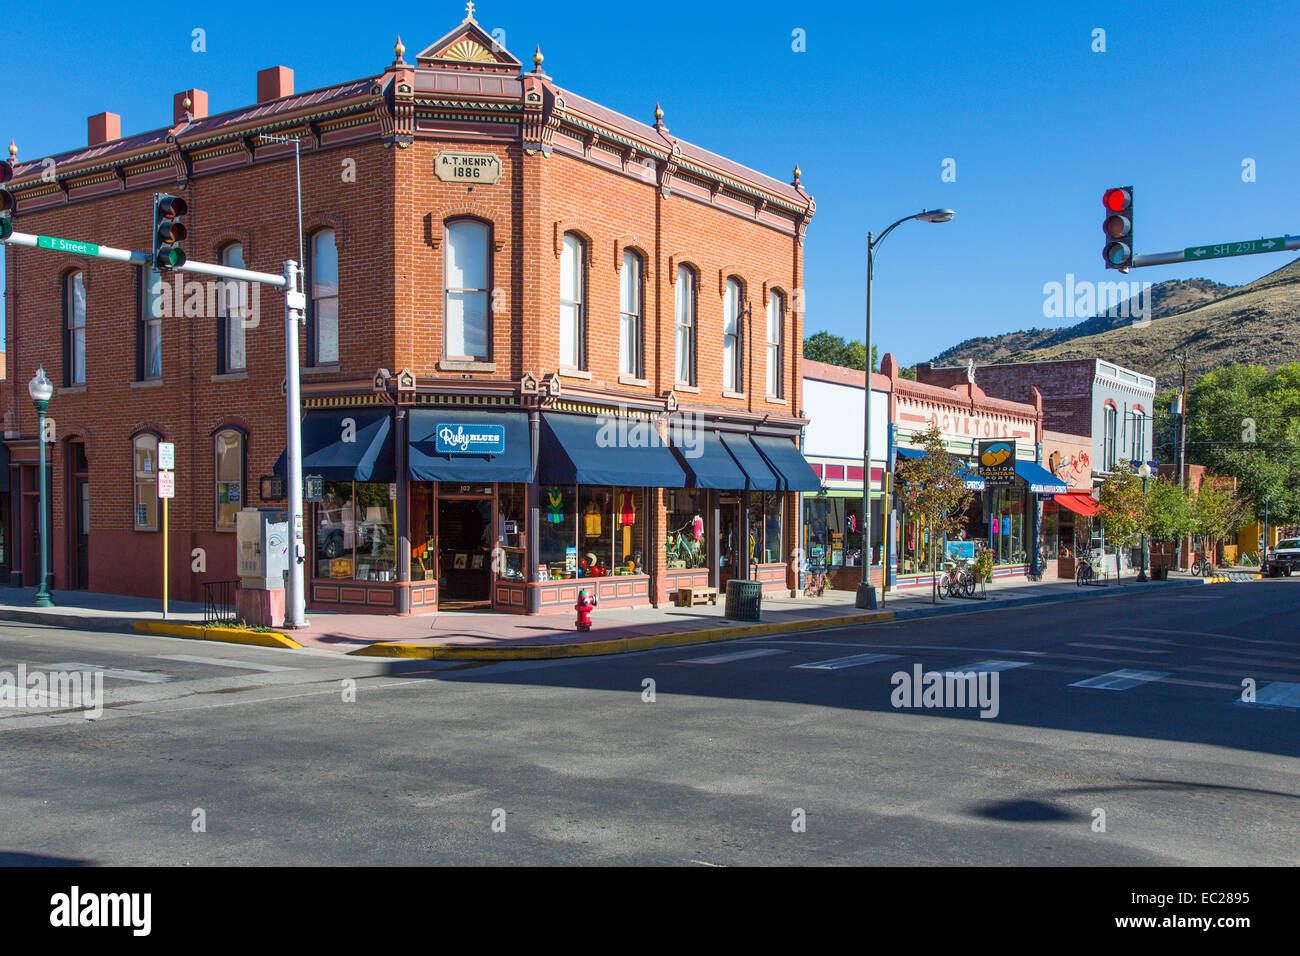 Downtown area of historic old city of Salida in the Rocky Mountains in central Colorado - Stock Image